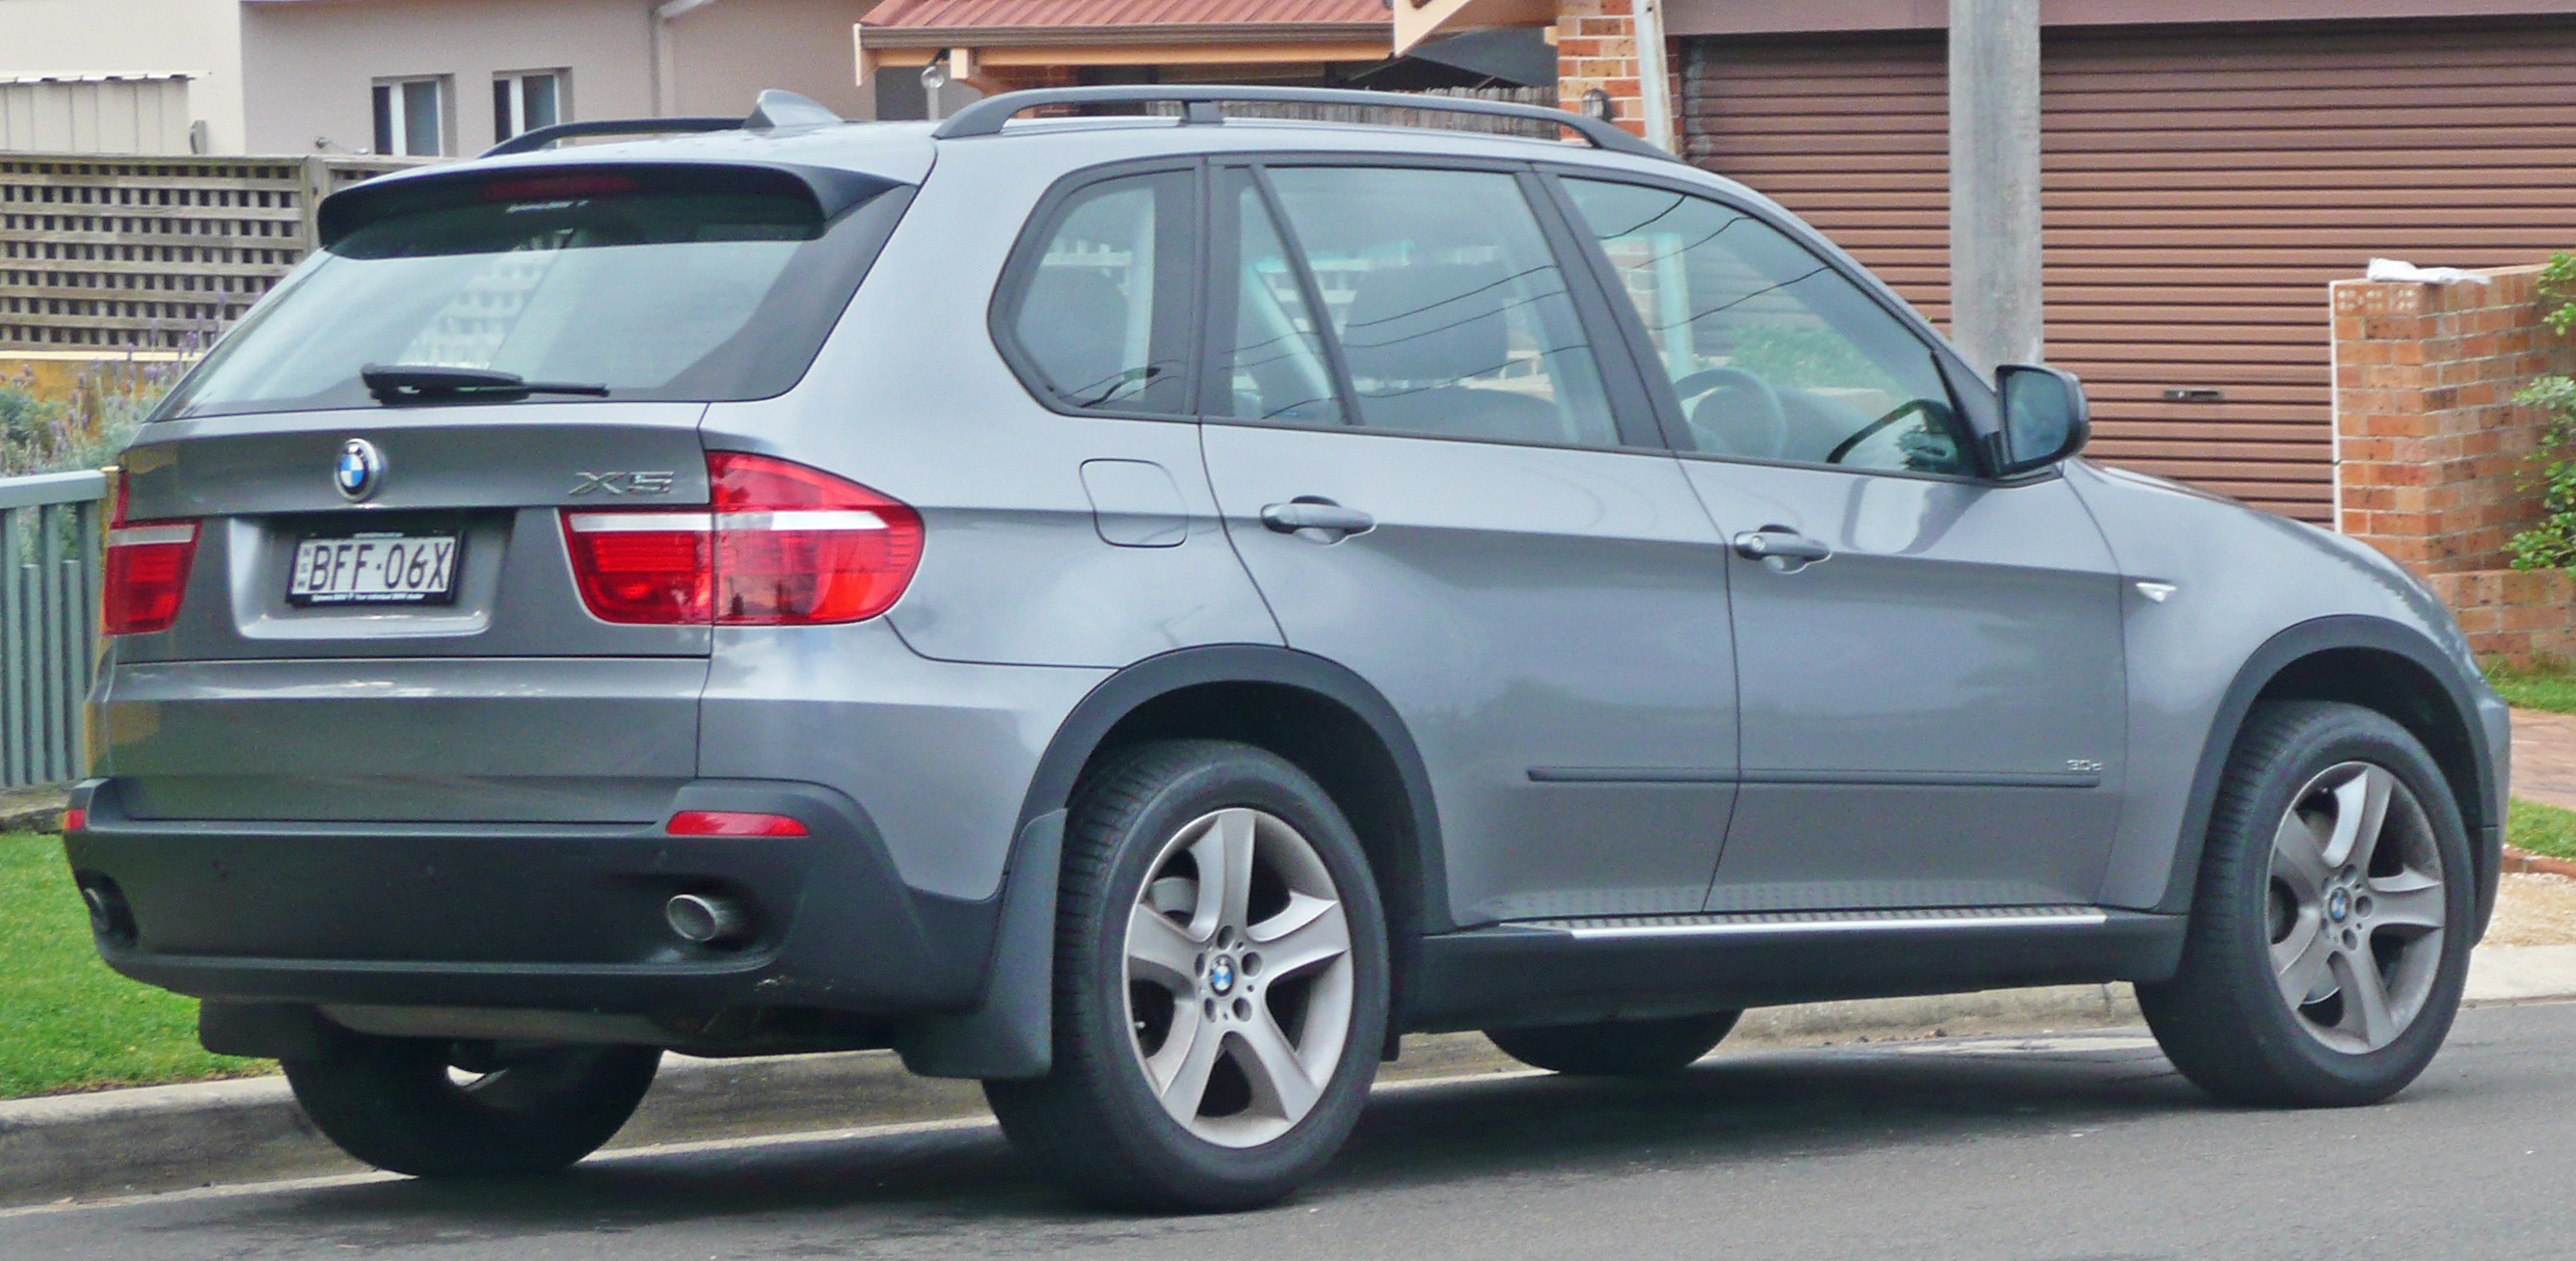 File 2007 2008 Bmw X5 E70 3 0d 02 Jpg Wikimedia Commons